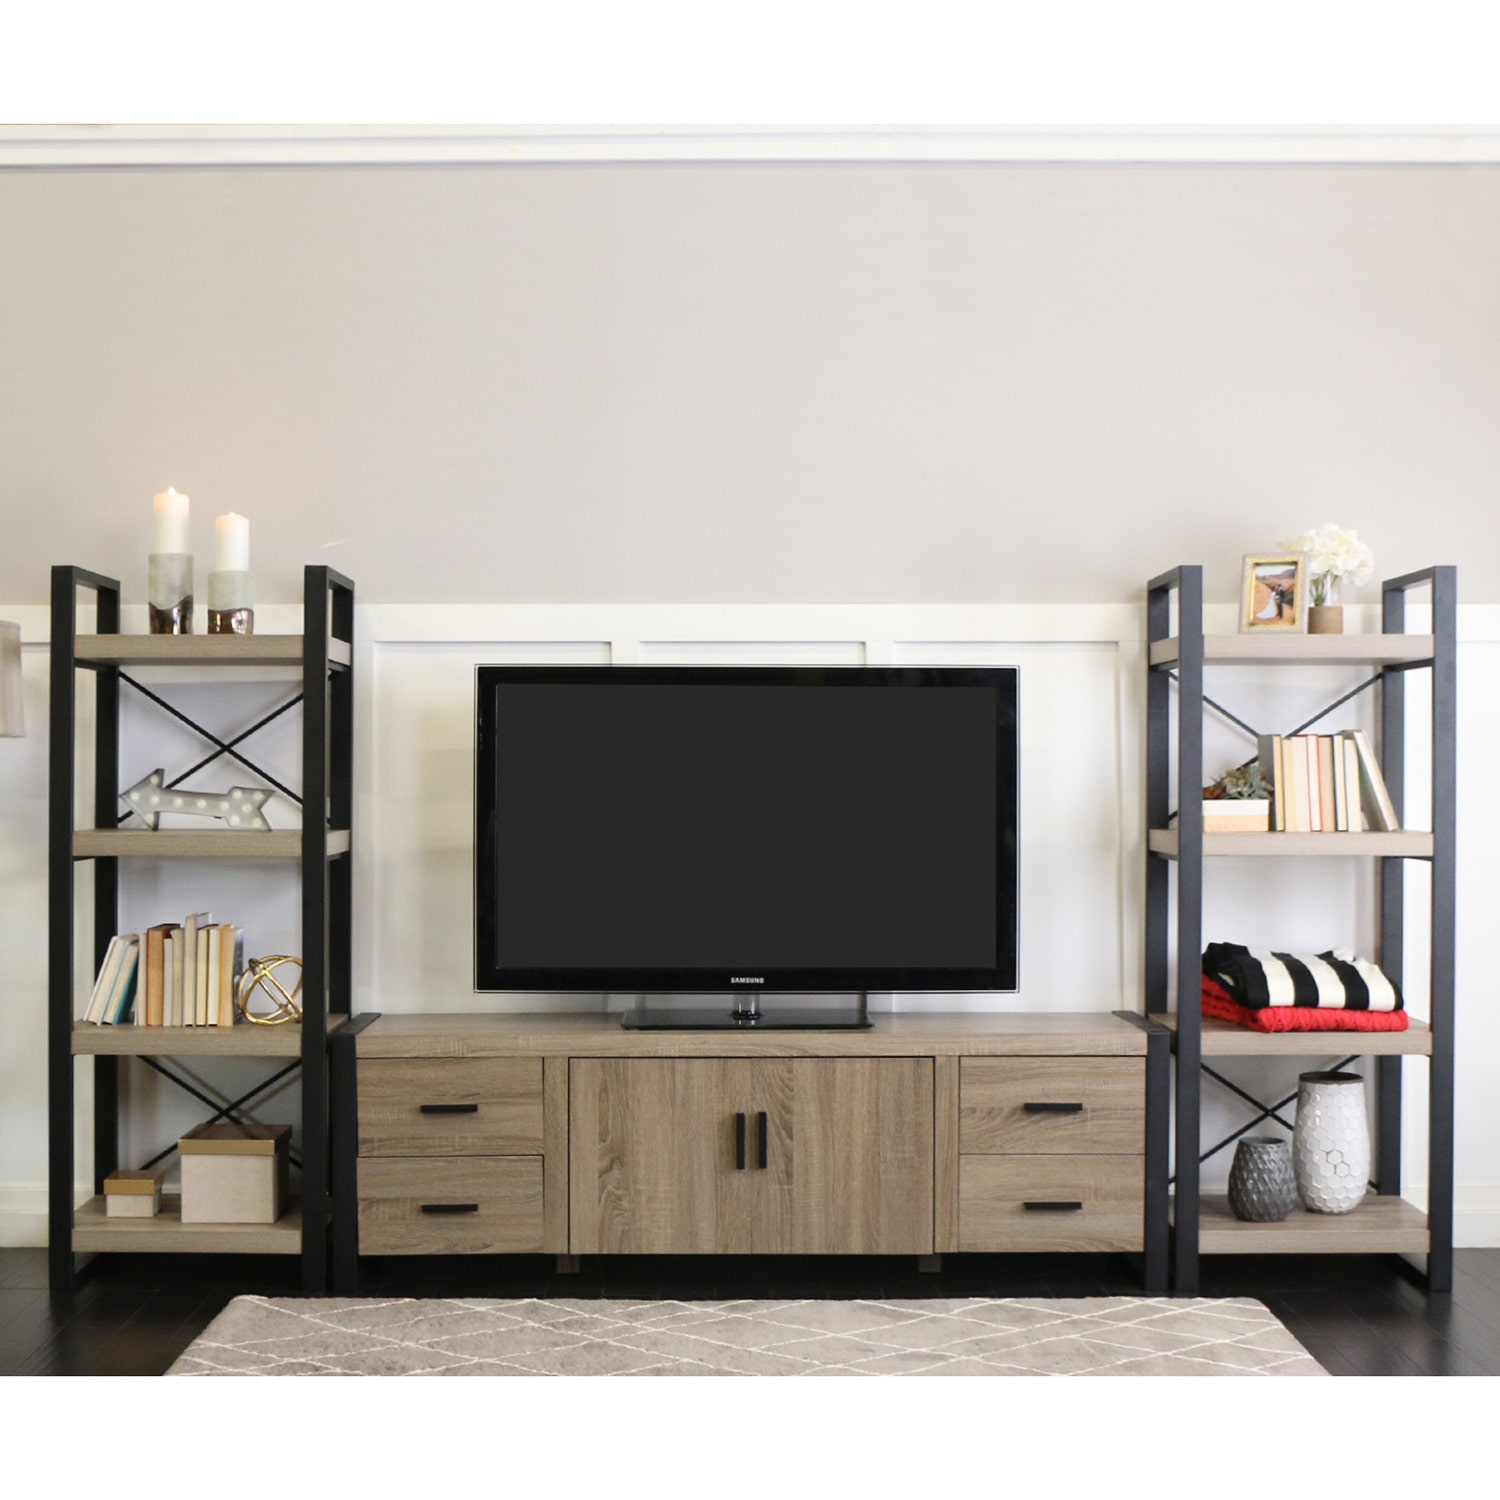 WE Furniture 70-inch Urban Blend Entertainment Center - Walmart.com